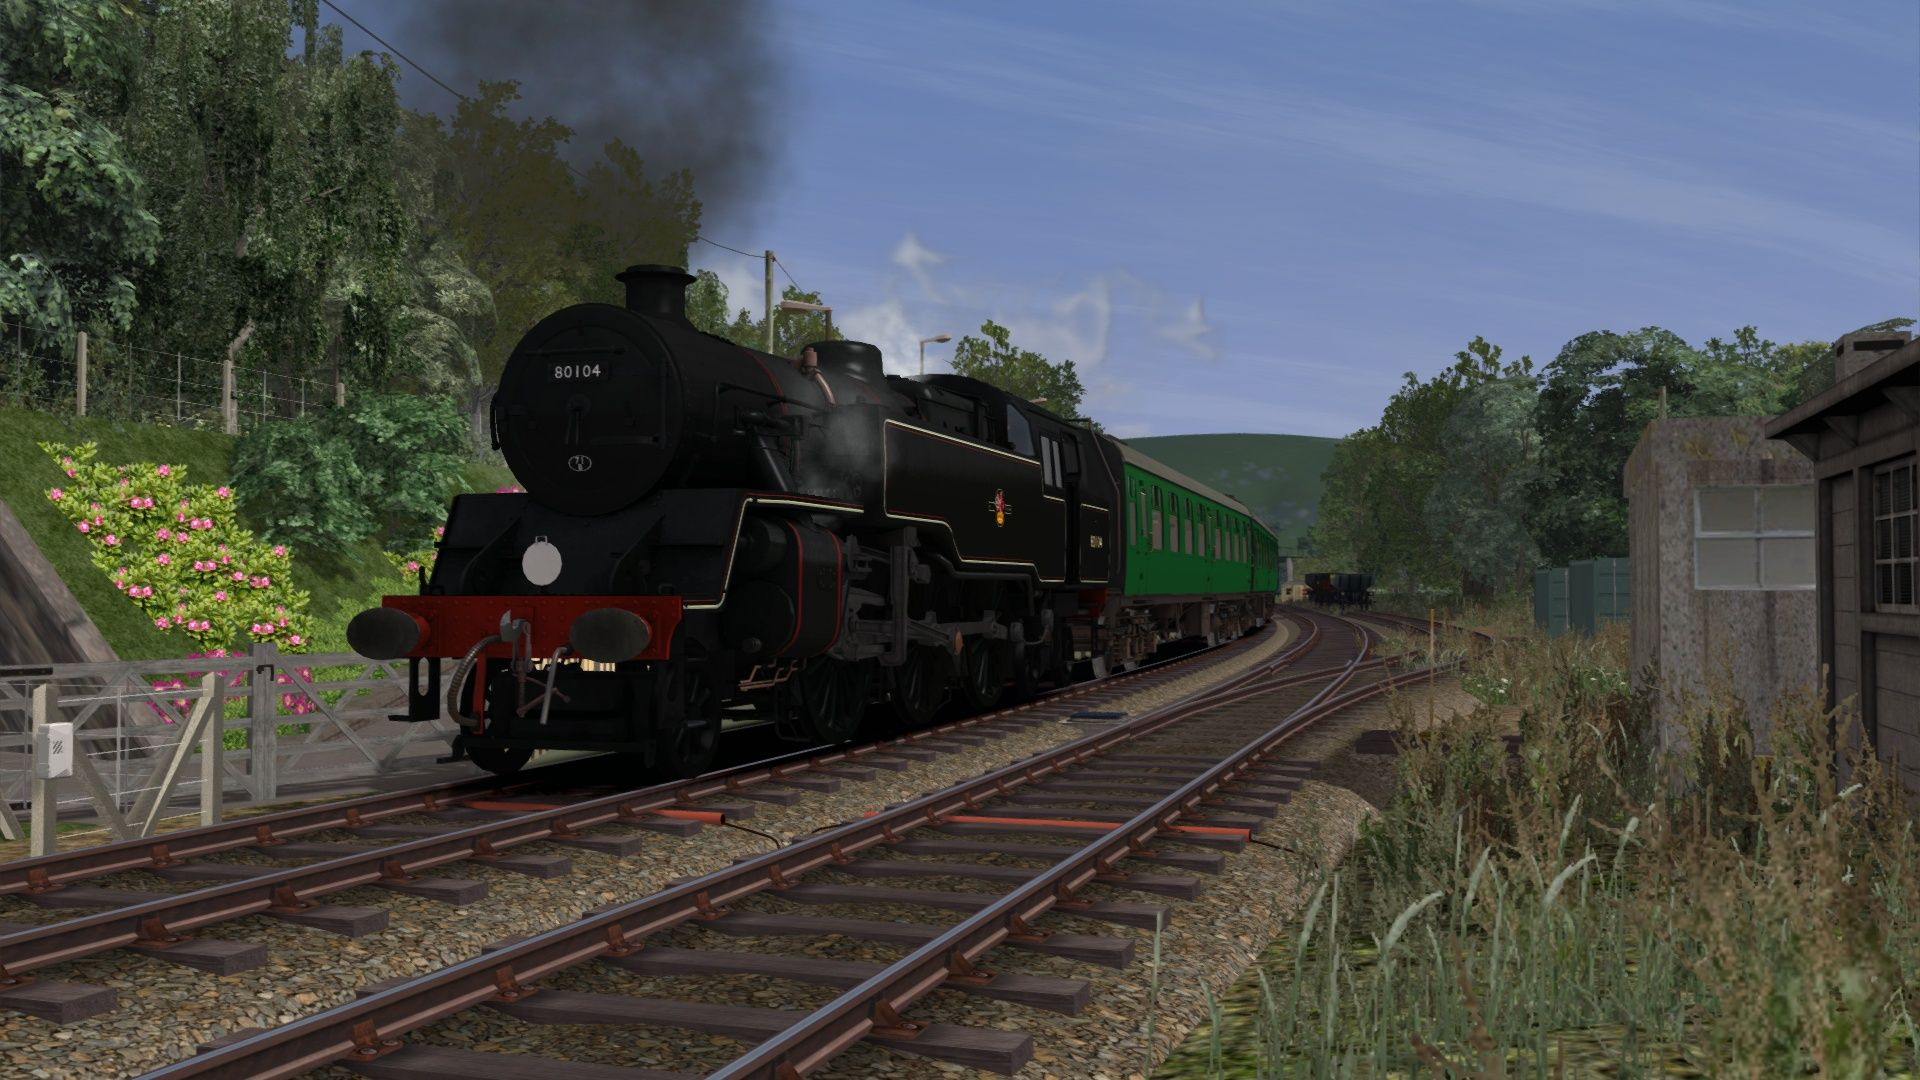 Screenshot_Swanage Railway_50.64505--2.06306_16-24-40